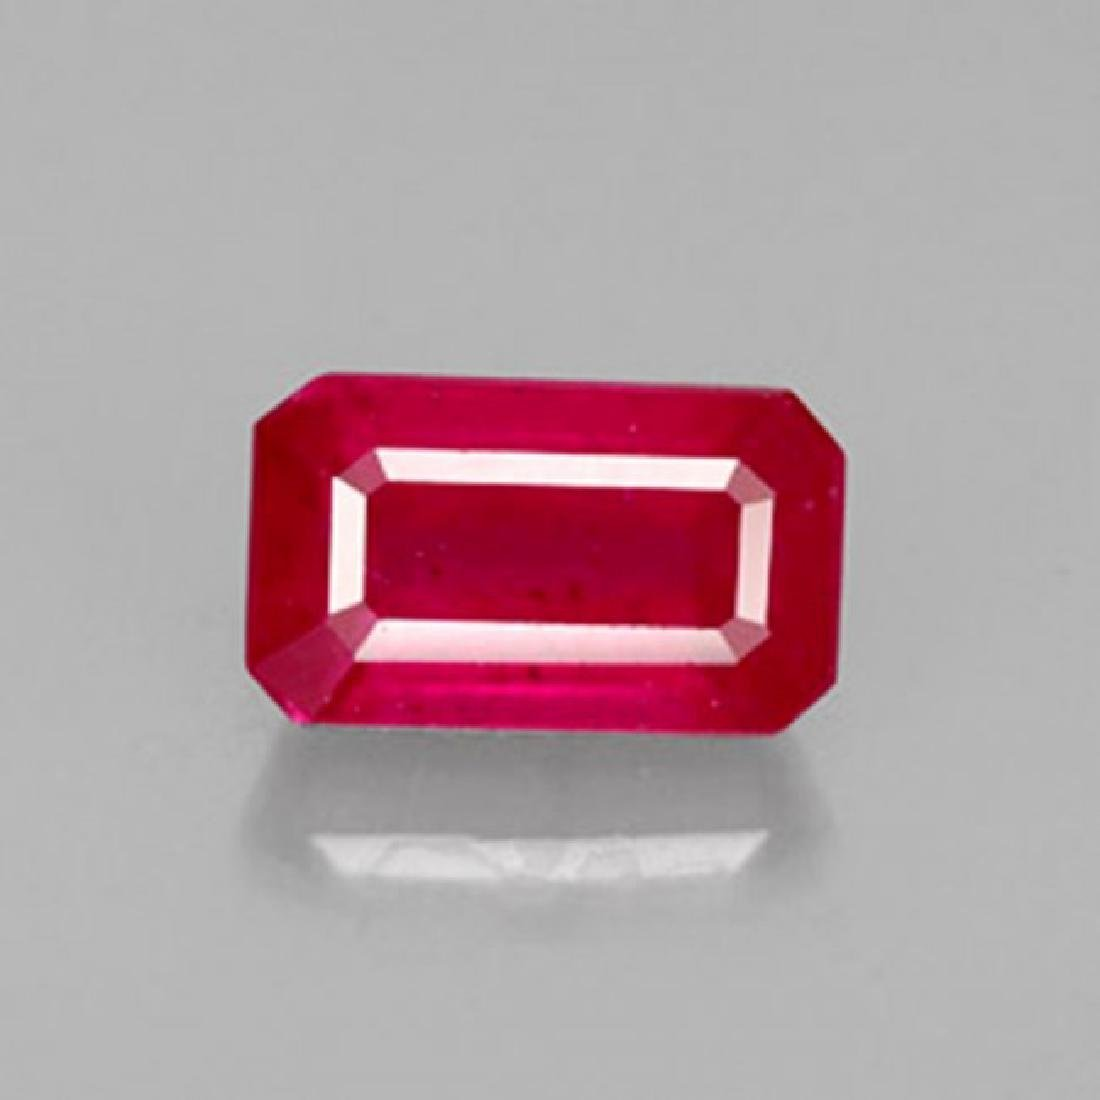 Natural Ruby Octagon Facet 1.78Ct 9.2x5.1x3.4 mm